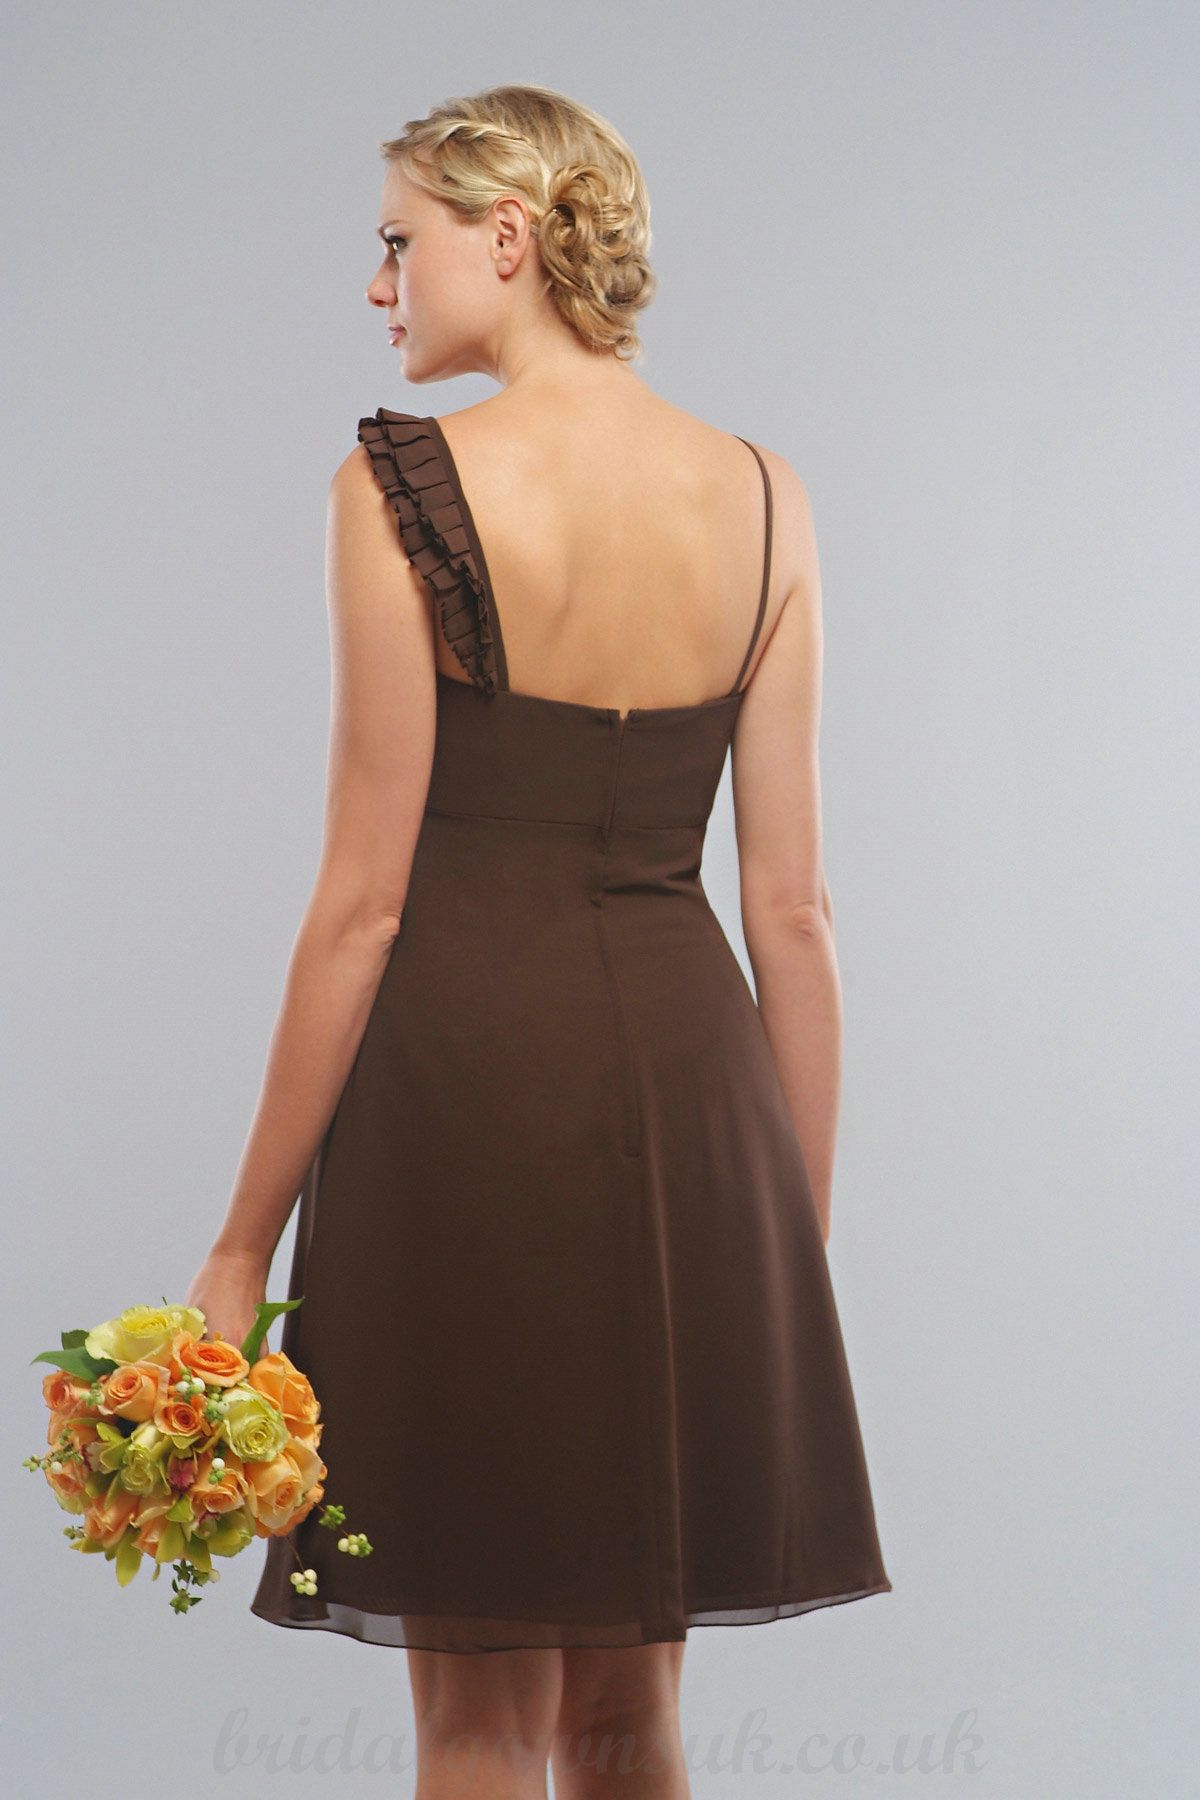 2012 New Style Asymmetric Straps Square Neckline Sleeveless with Beads Short Chiffon Brown Bridesmaid Dress